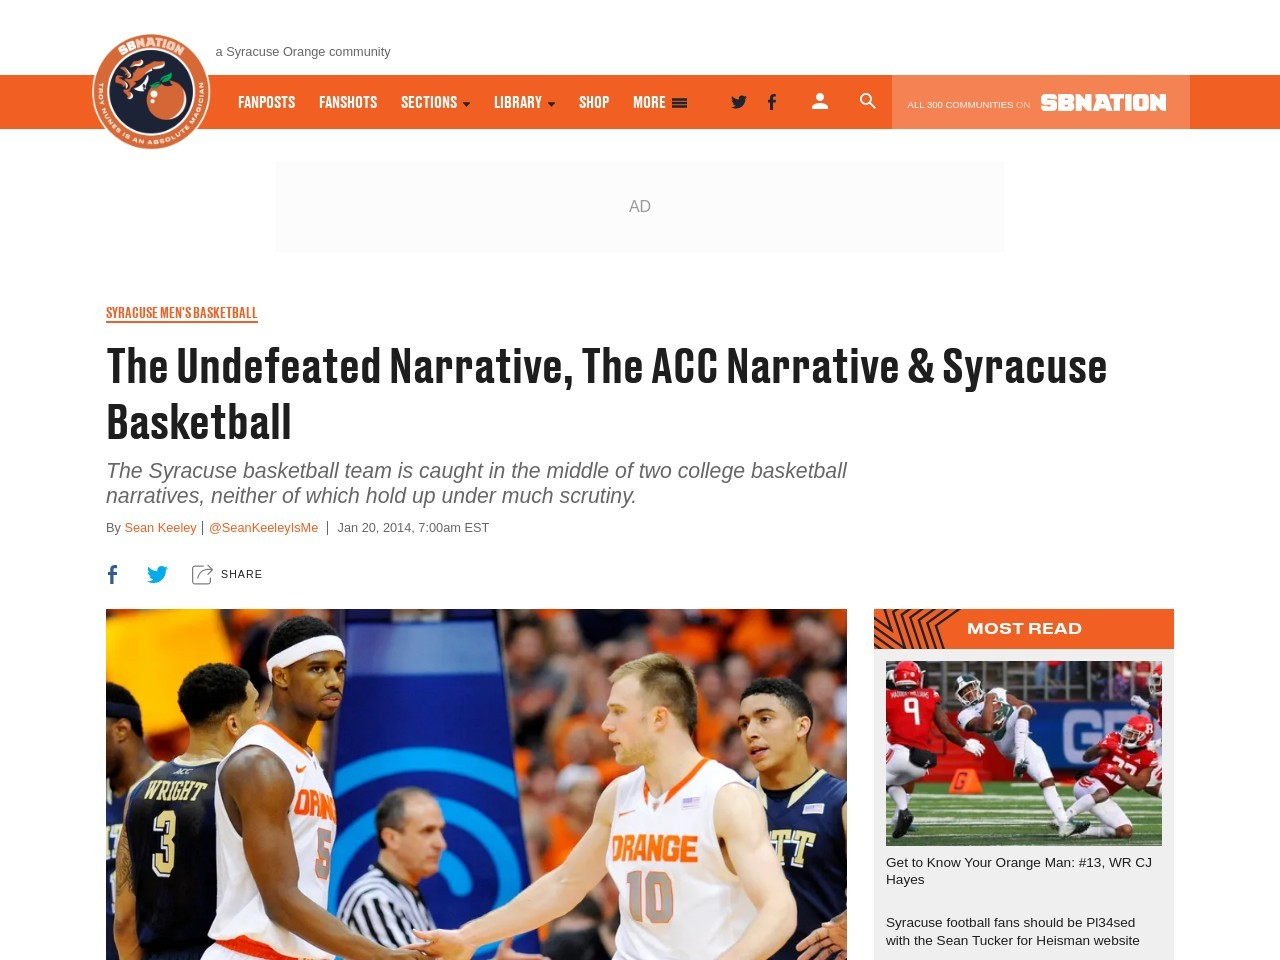 The Undefeated Narrative, The ACC Narrative & Syracuse Basketball